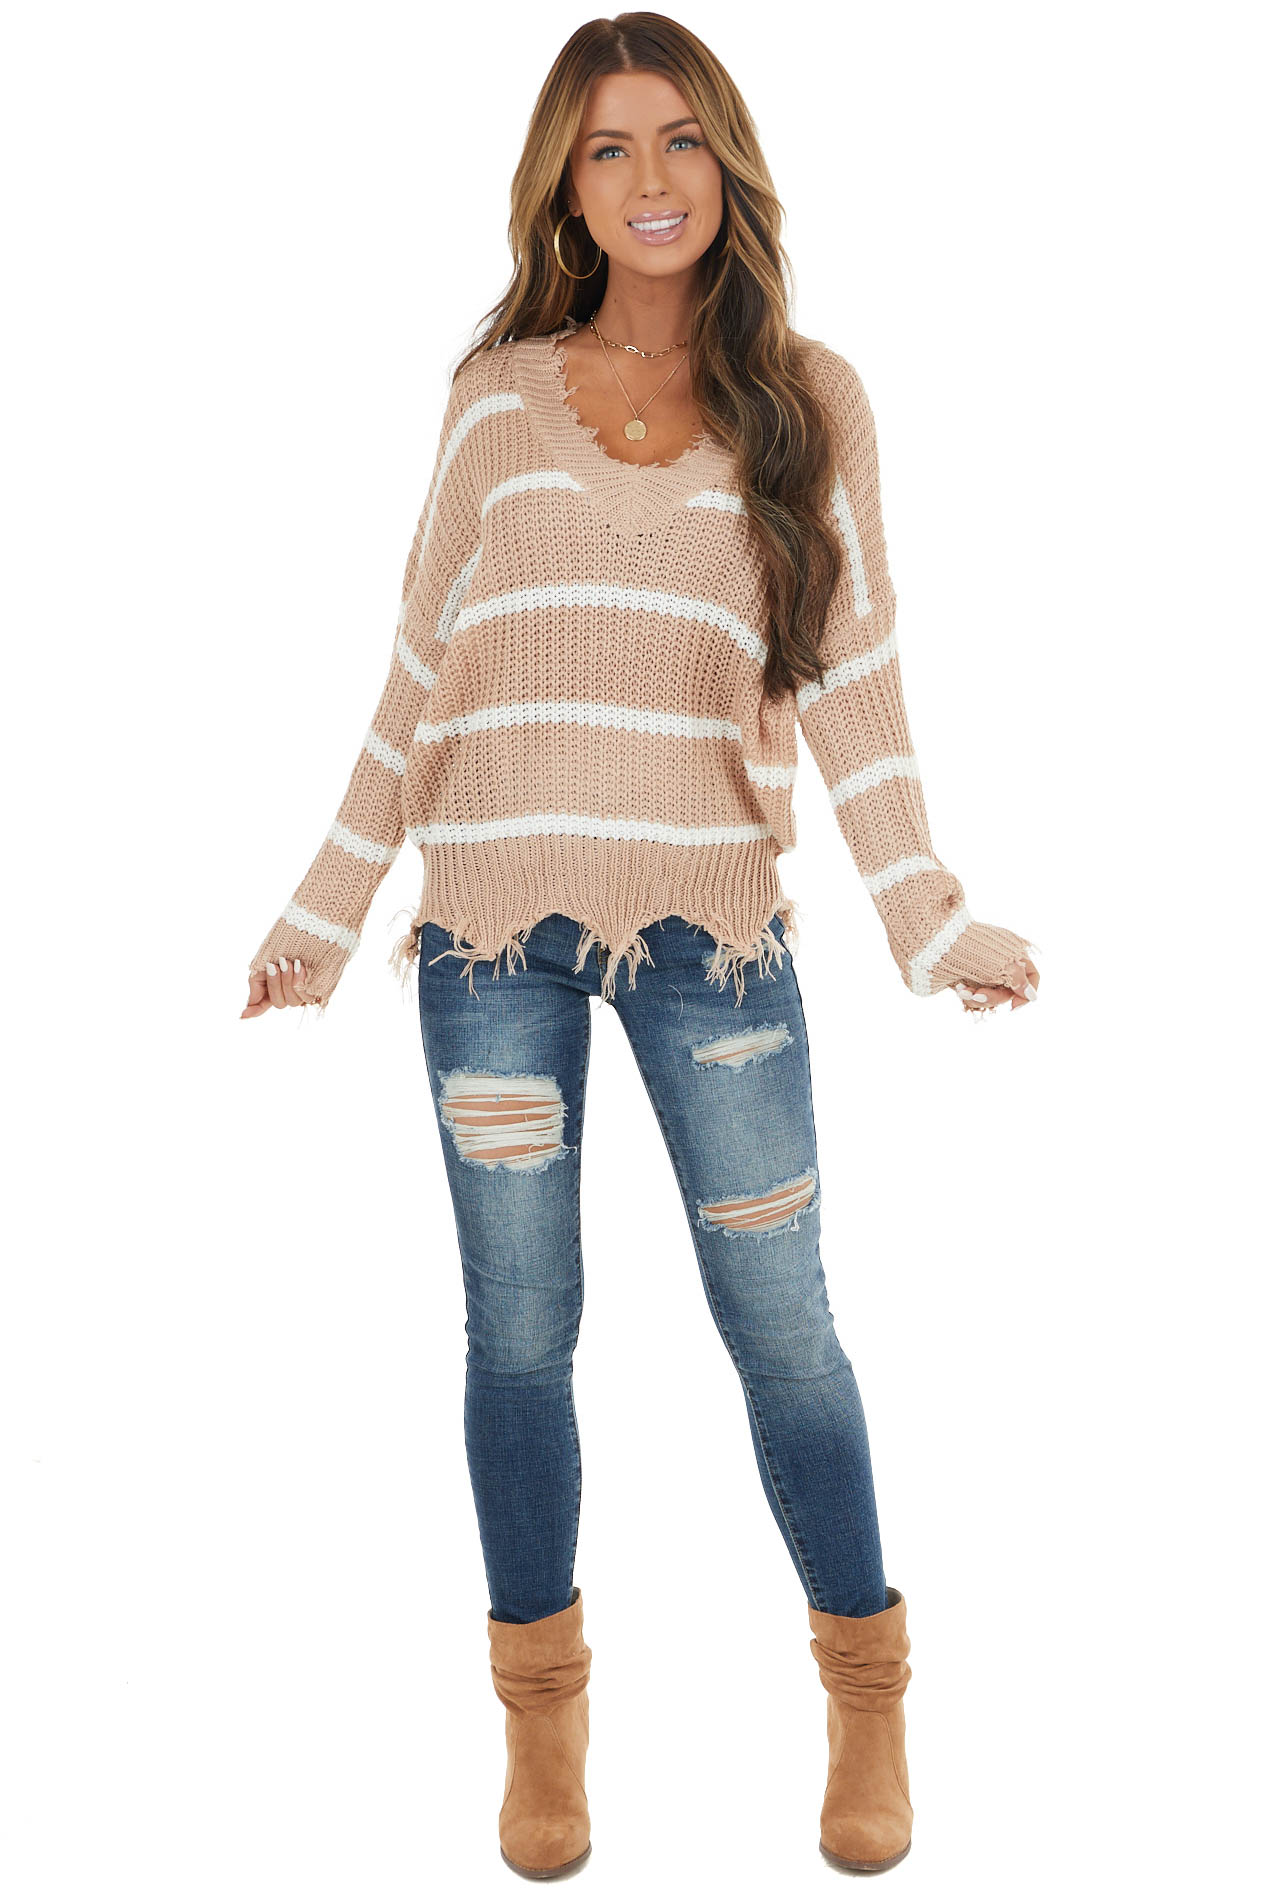 Beige and White Striped Loose Knit Lightweight Sweater